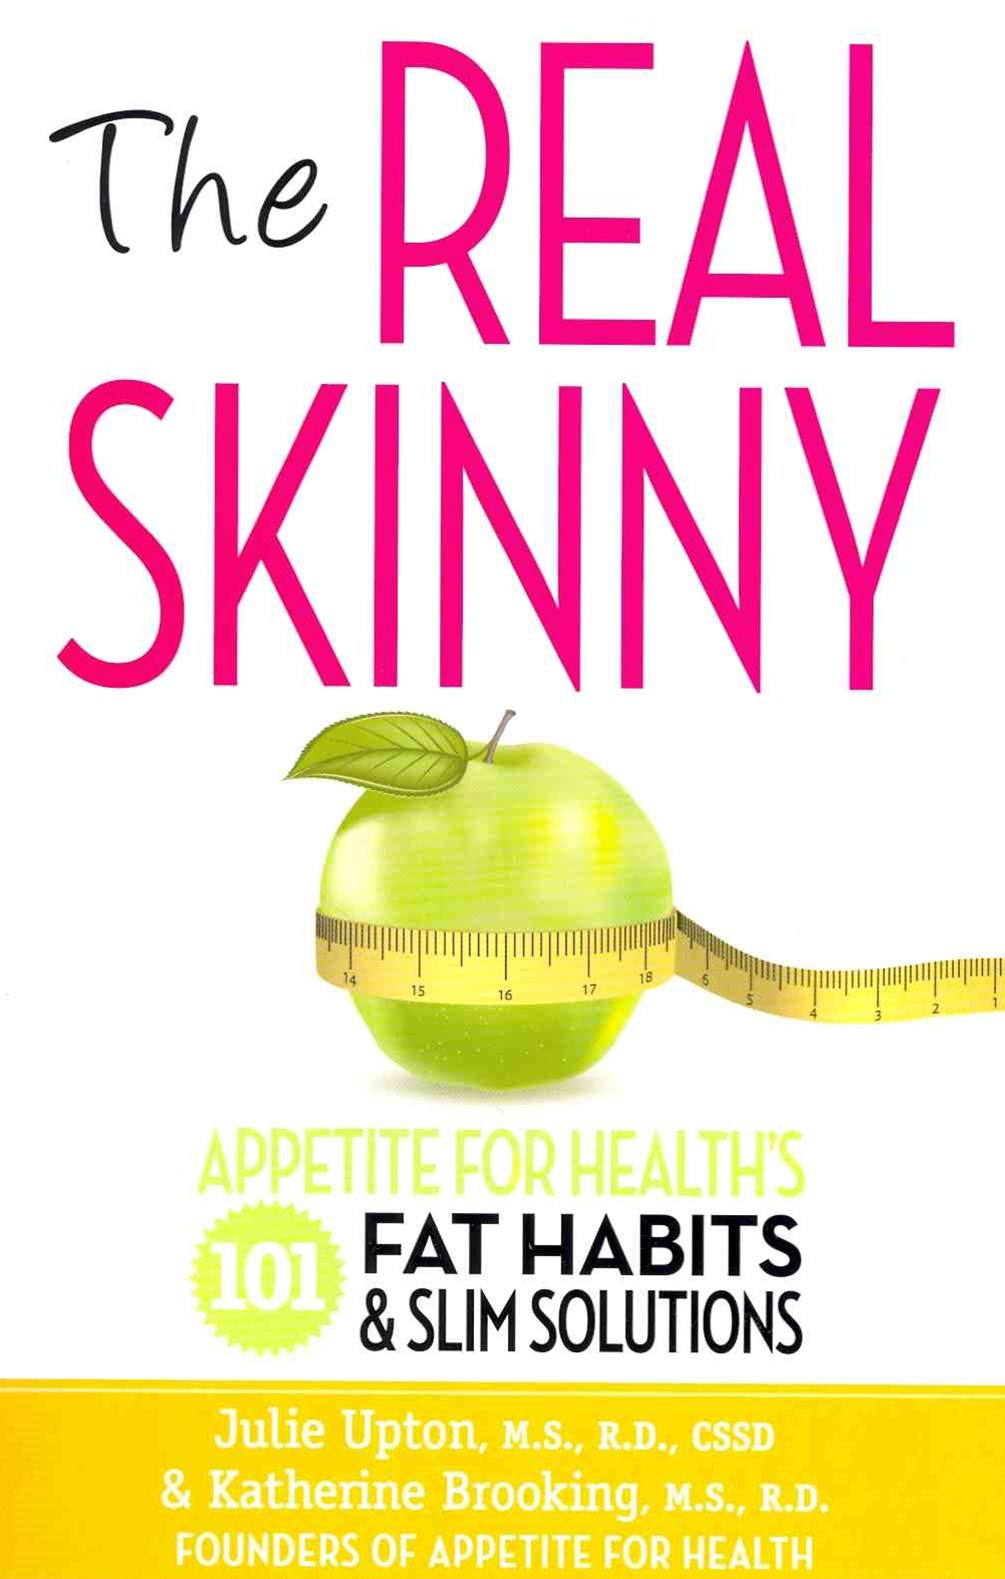 The Real Skinny: Appetite for Health's 101 Fat Habits & Slim Solutions